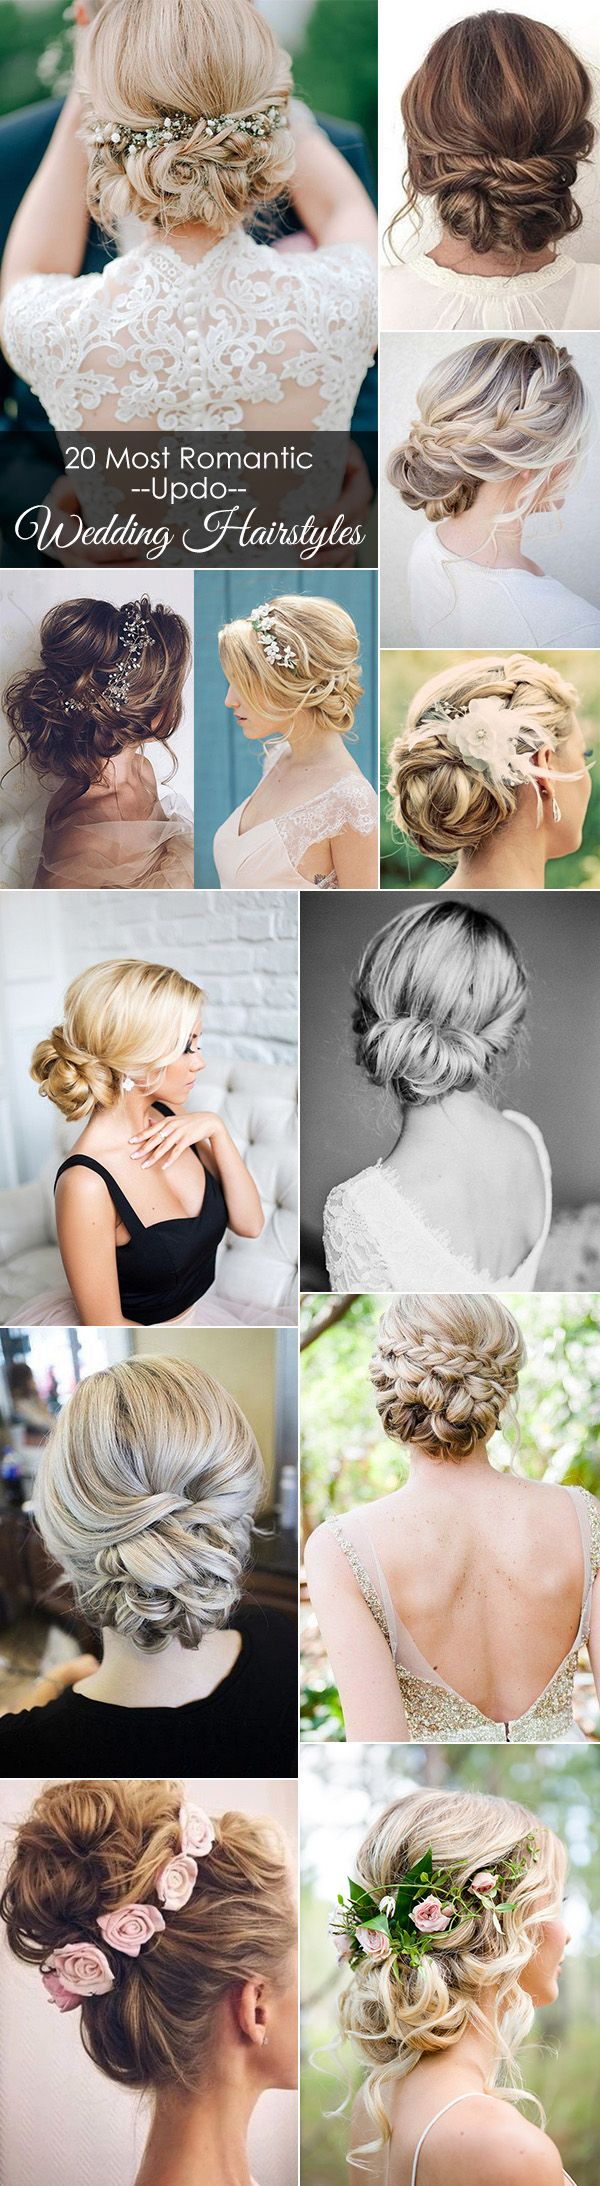 20 most romantic updo wedding hairstyles